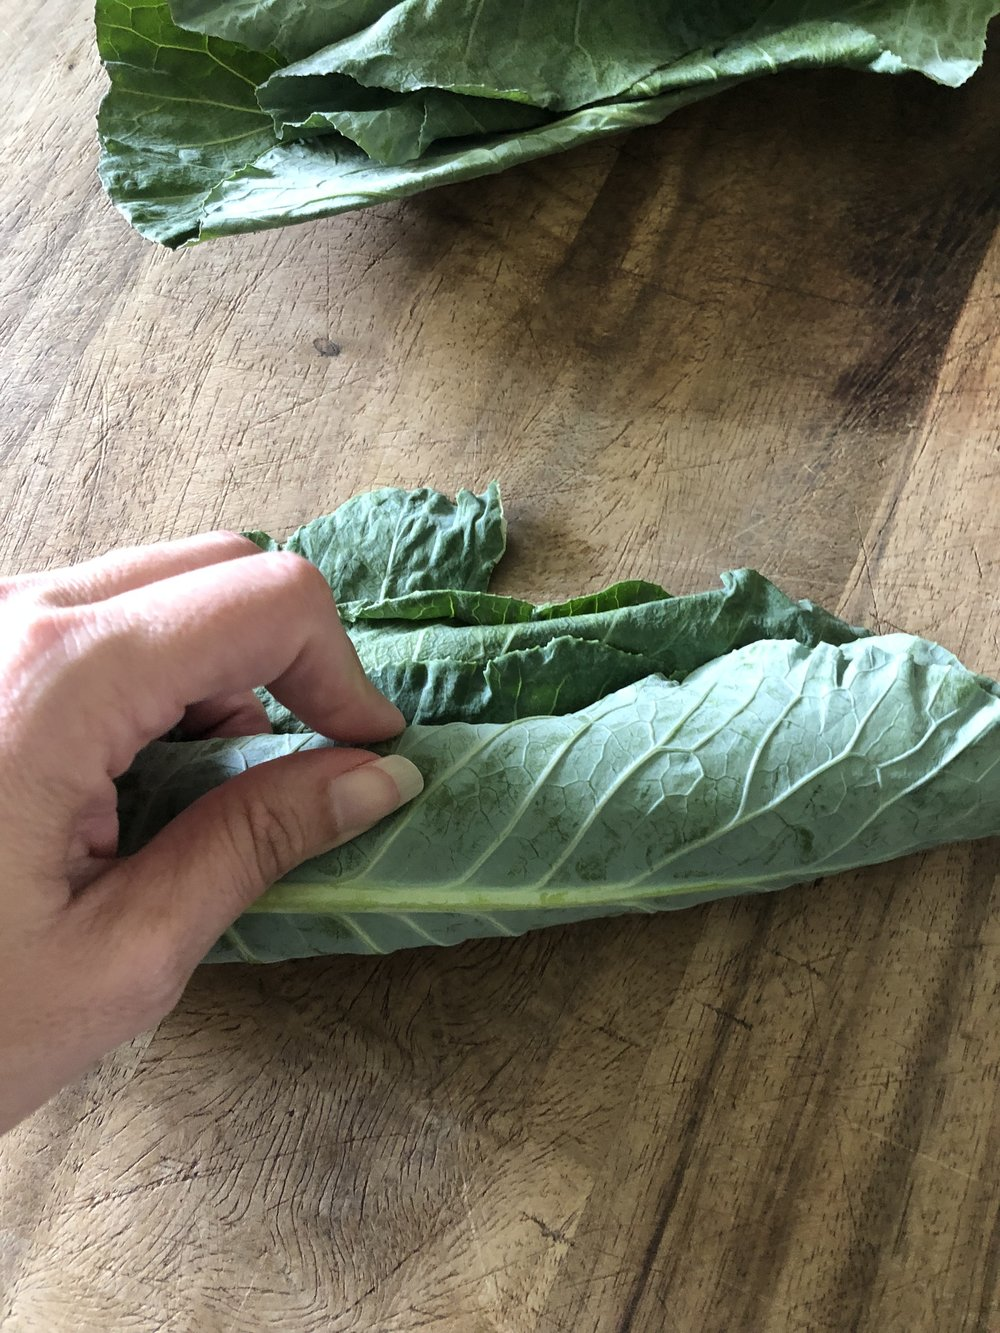 Roll up the leaves to make it easier to cut.